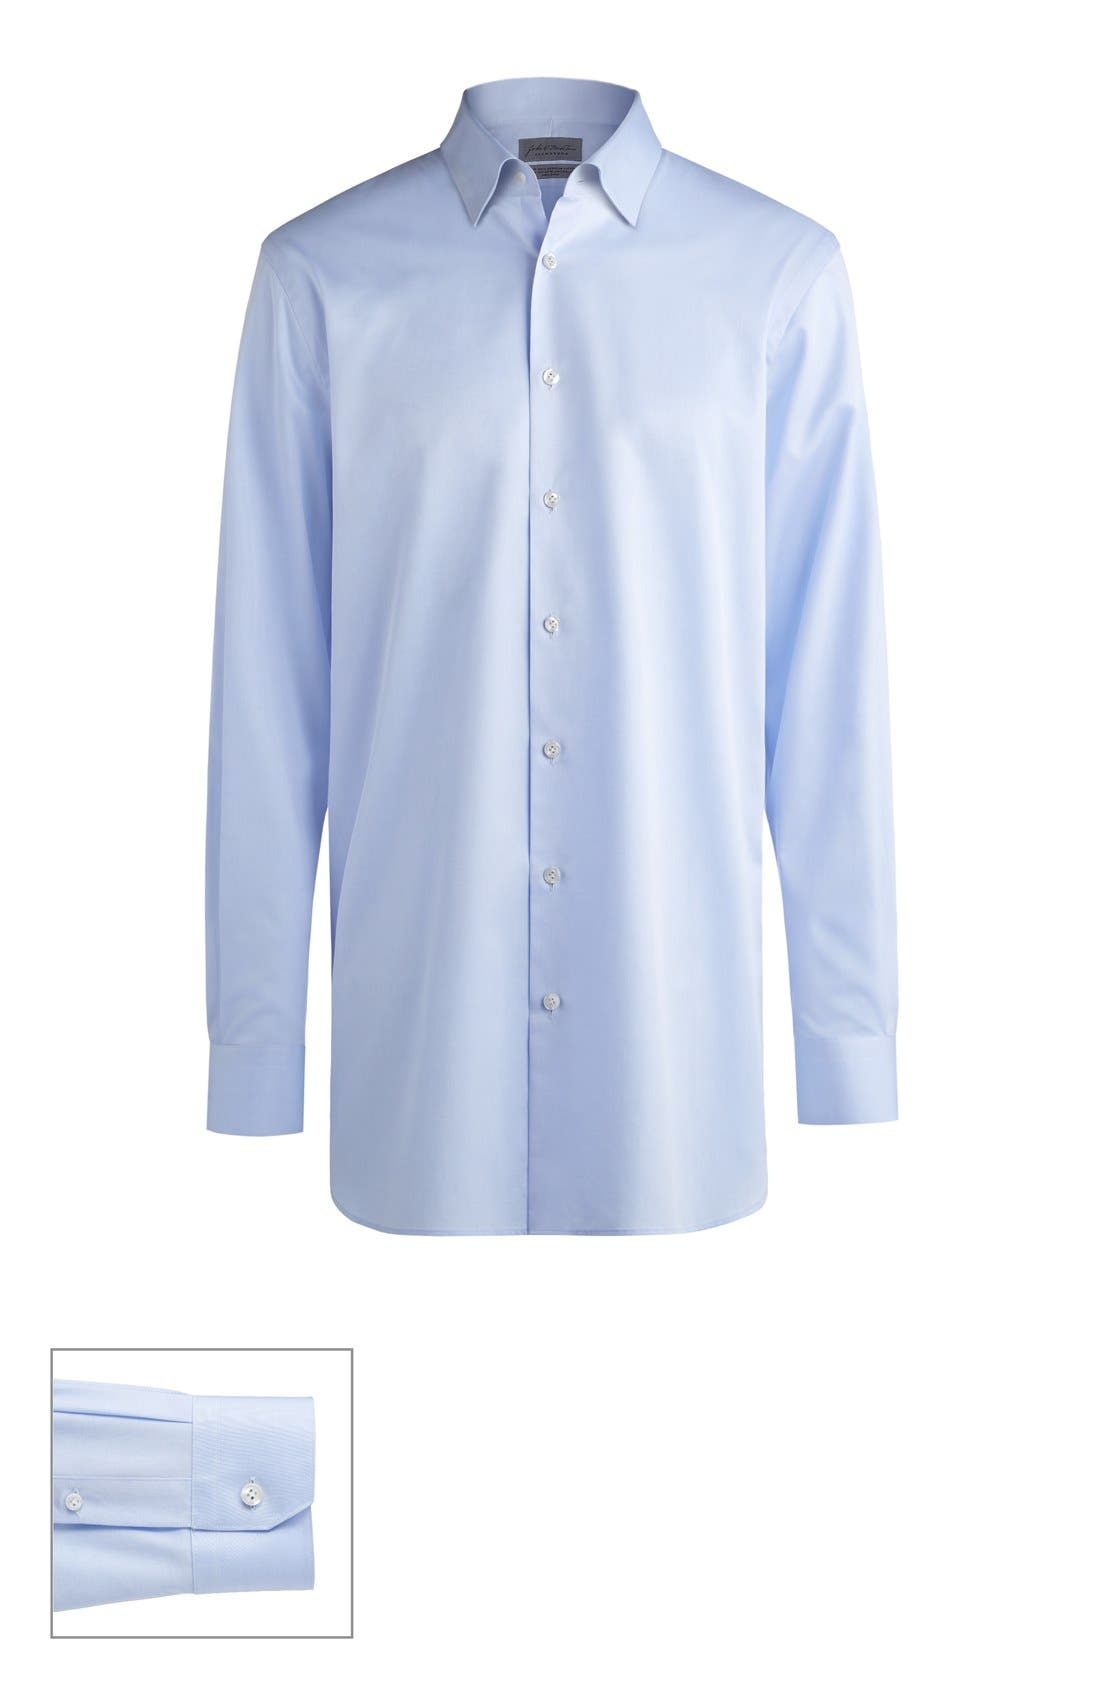 John W. Nordstrom® Made to Measure Extra Trim Fit Straight Collar Solid Dress Shirt